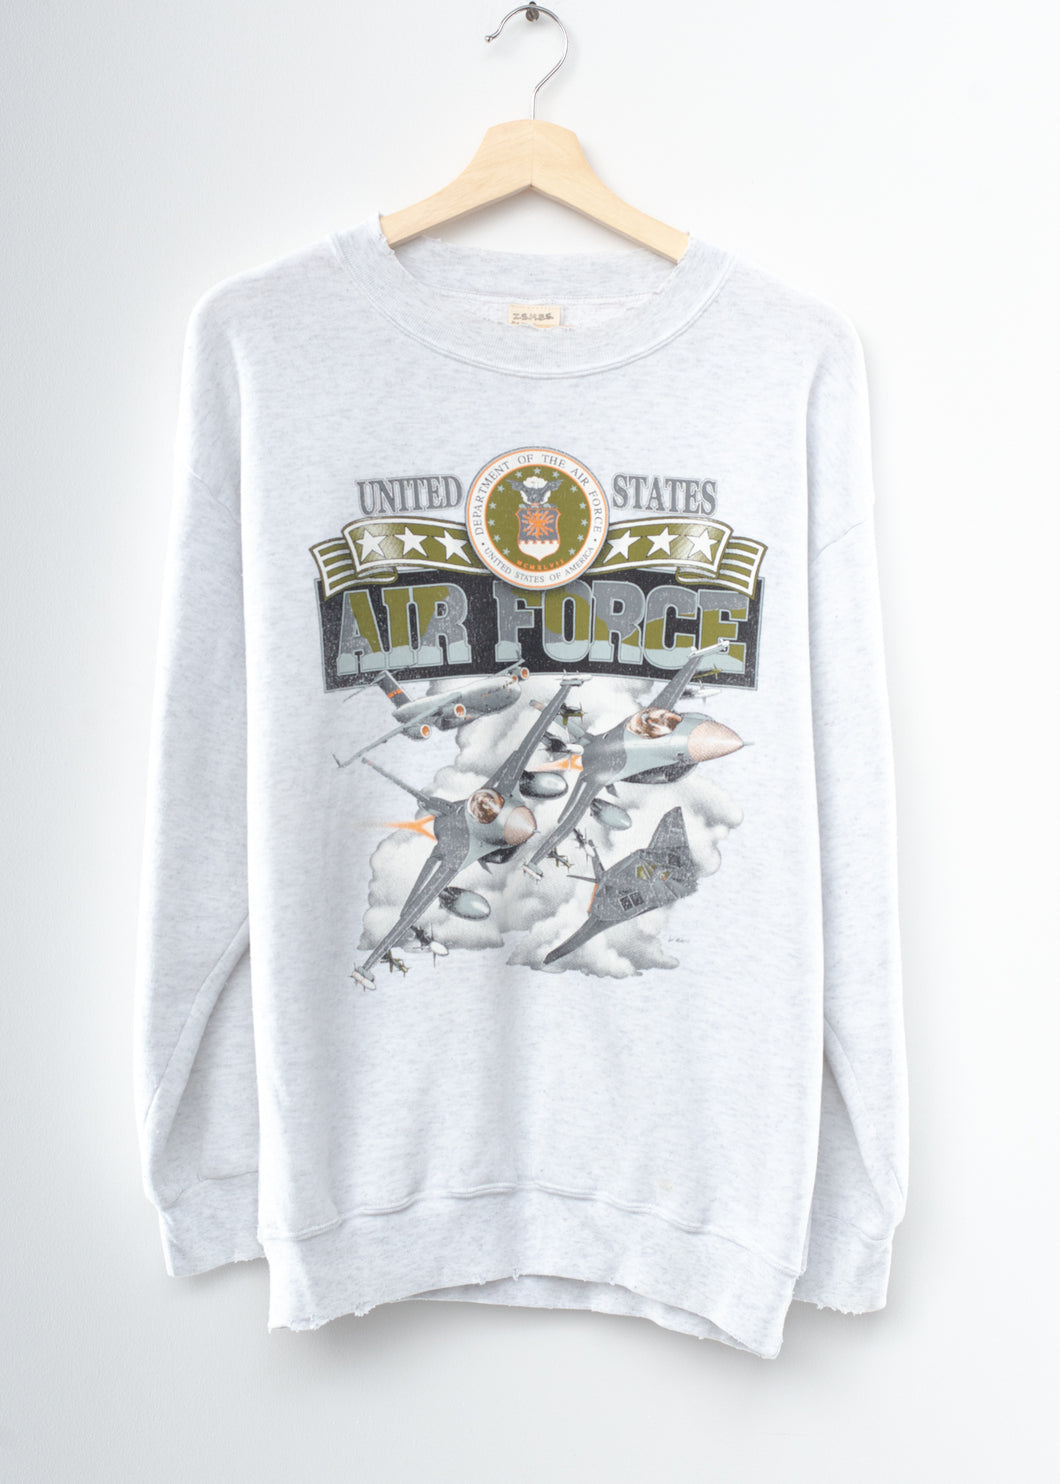 United States Air Force Sweatshirt